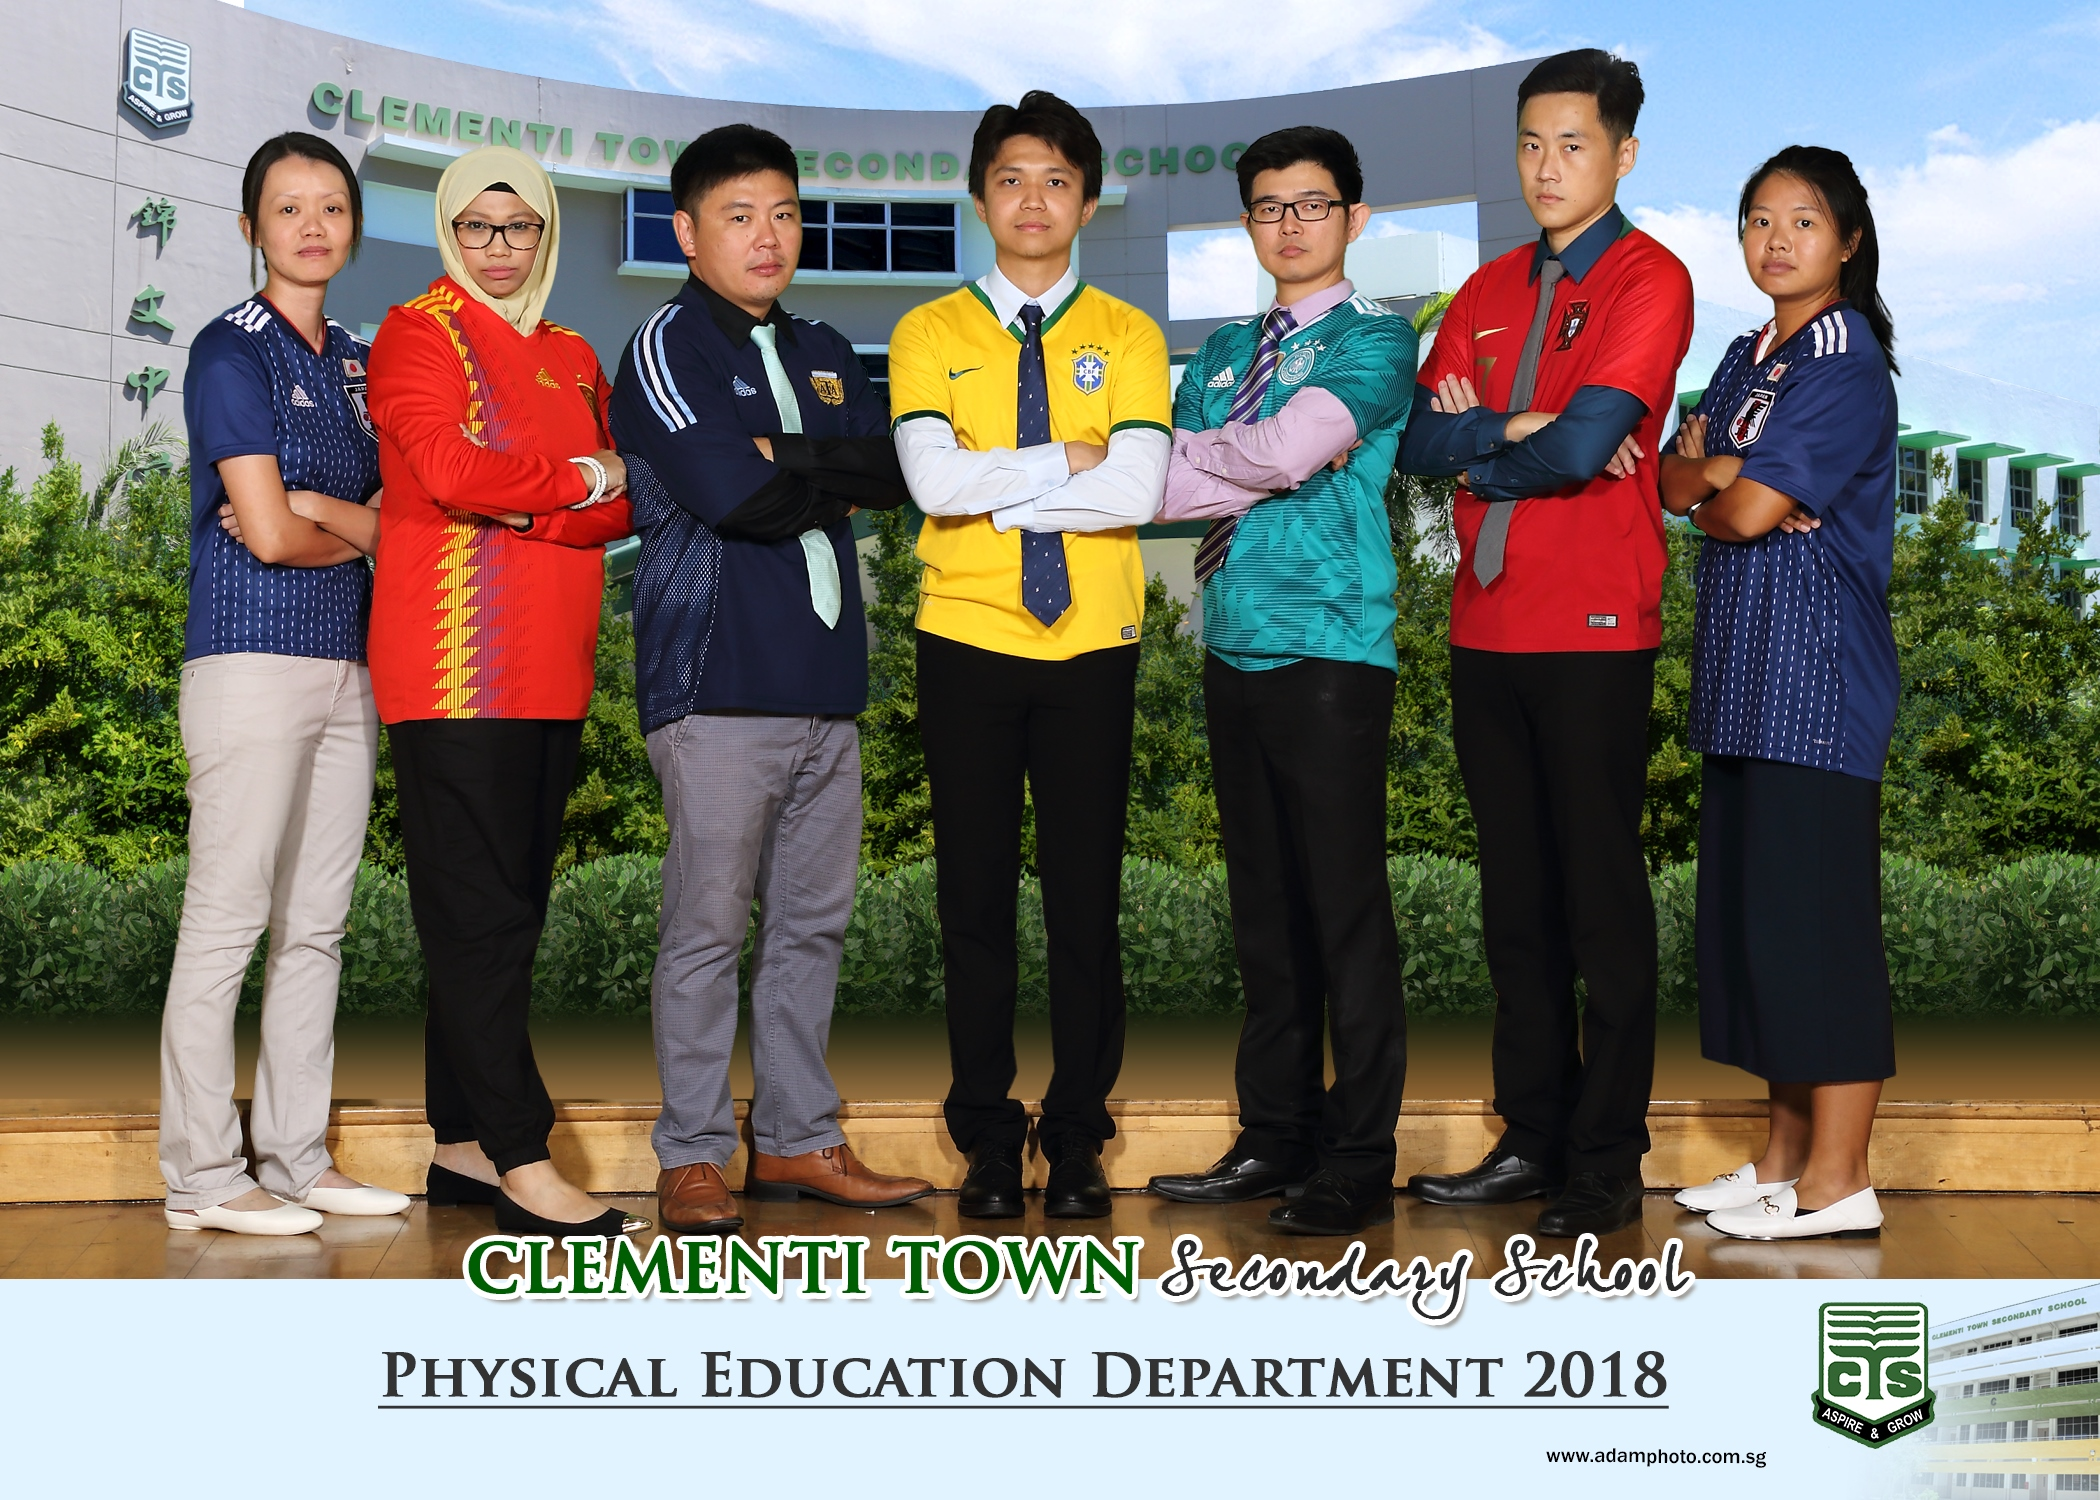 physical education department 2 (2).jpg